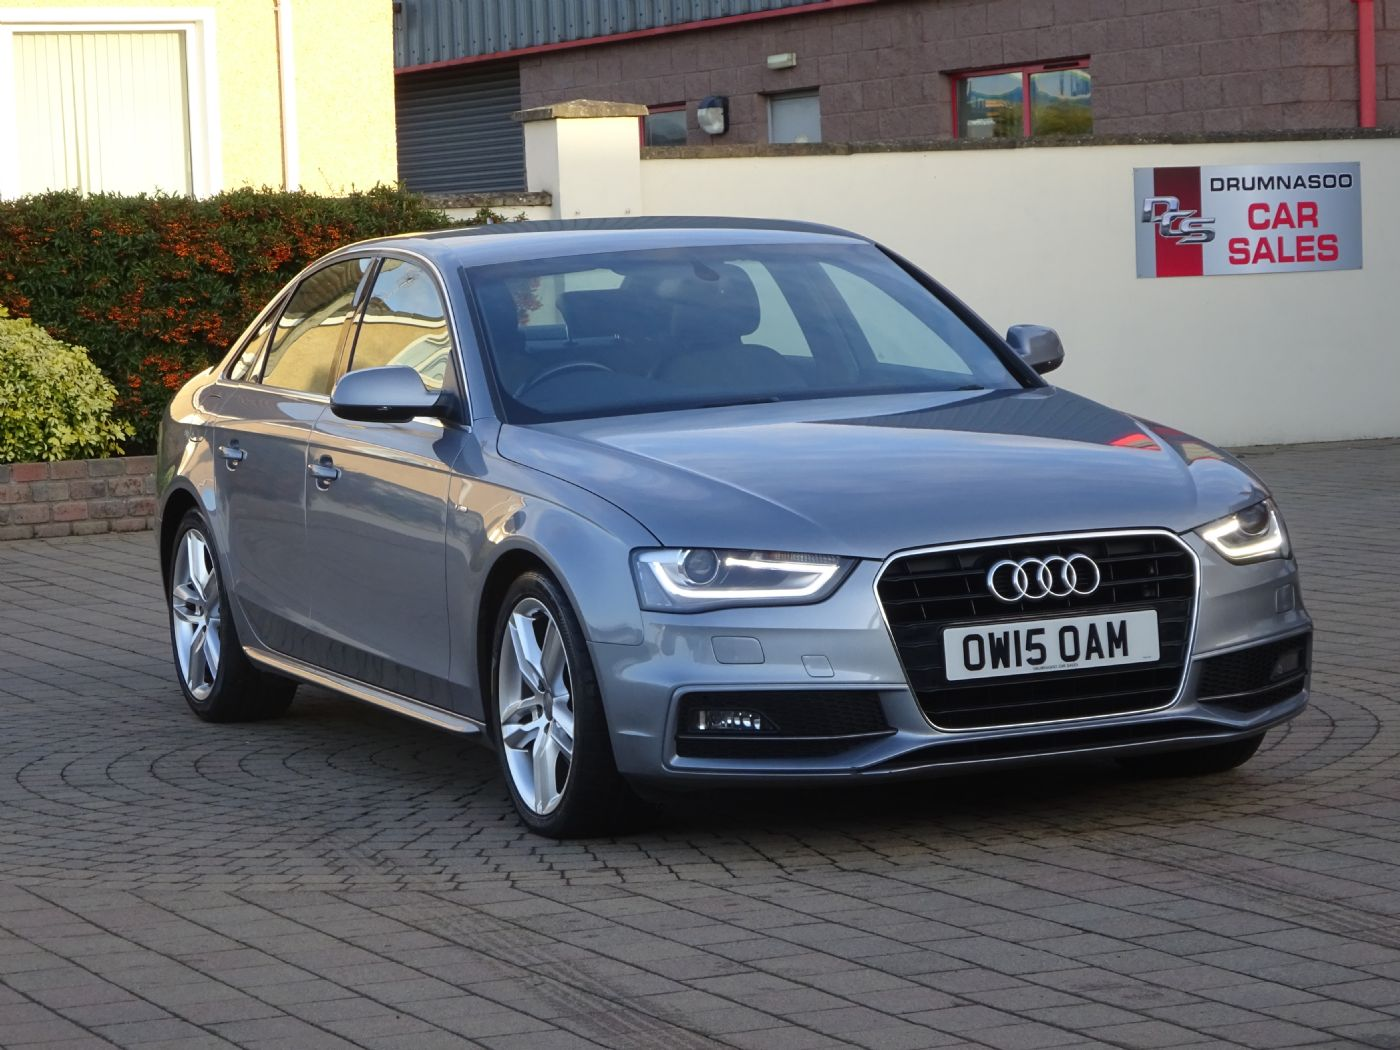 Audi A4 S Line Nav 2.0 TDI 150 Auto, Half leather sports seats